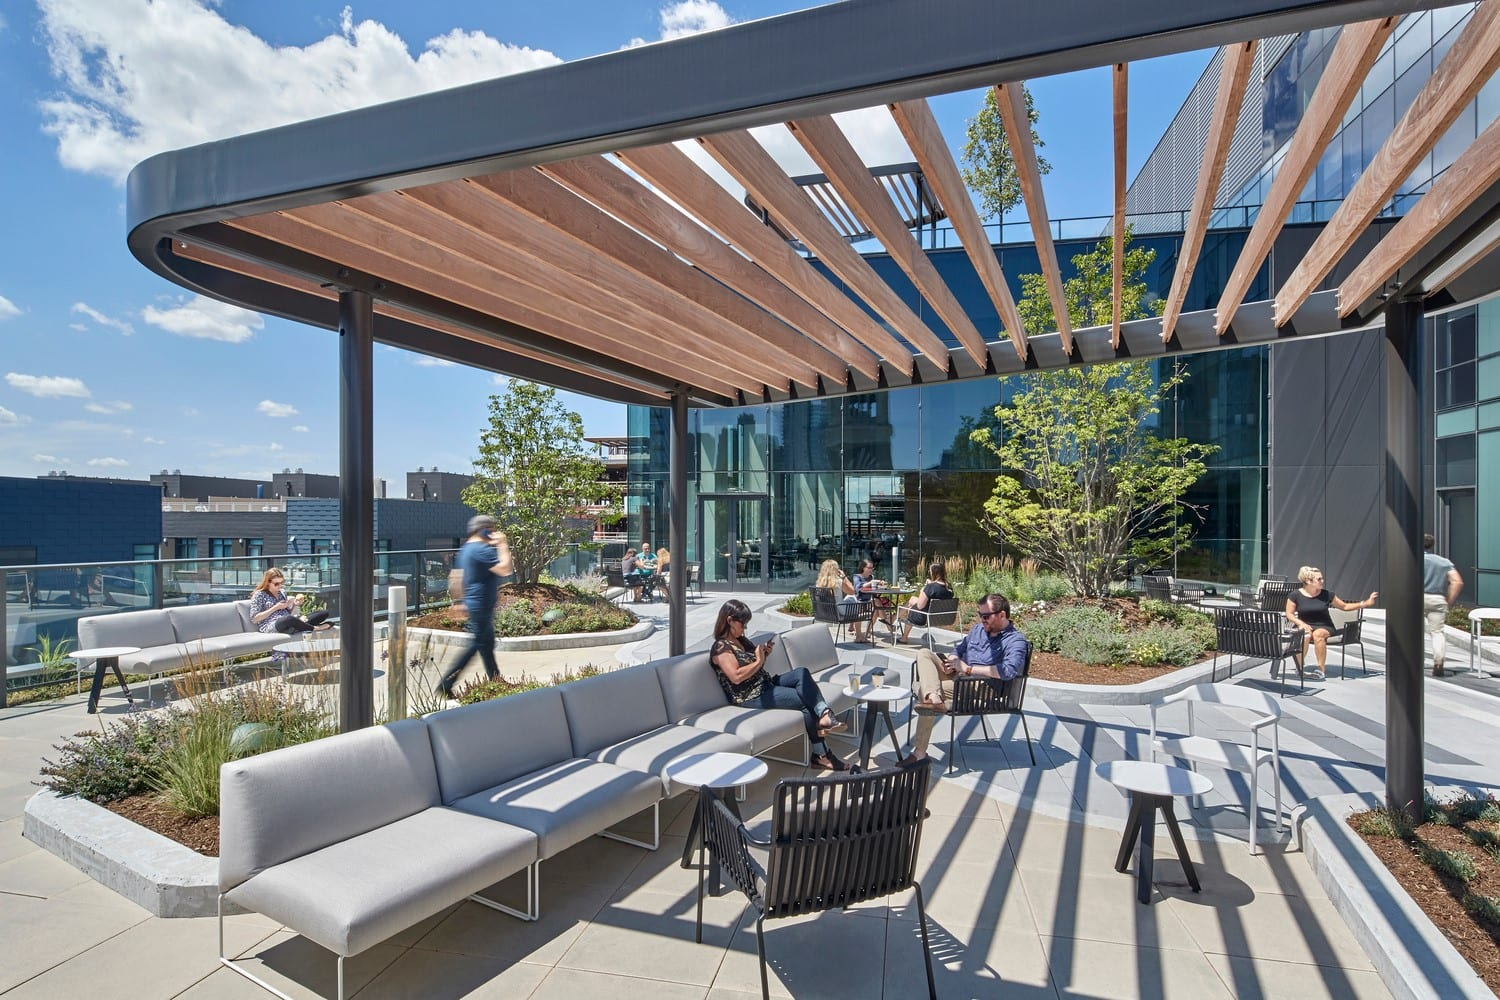 Access to fresh air and outdoor areas are a plus for Fitwel certification.